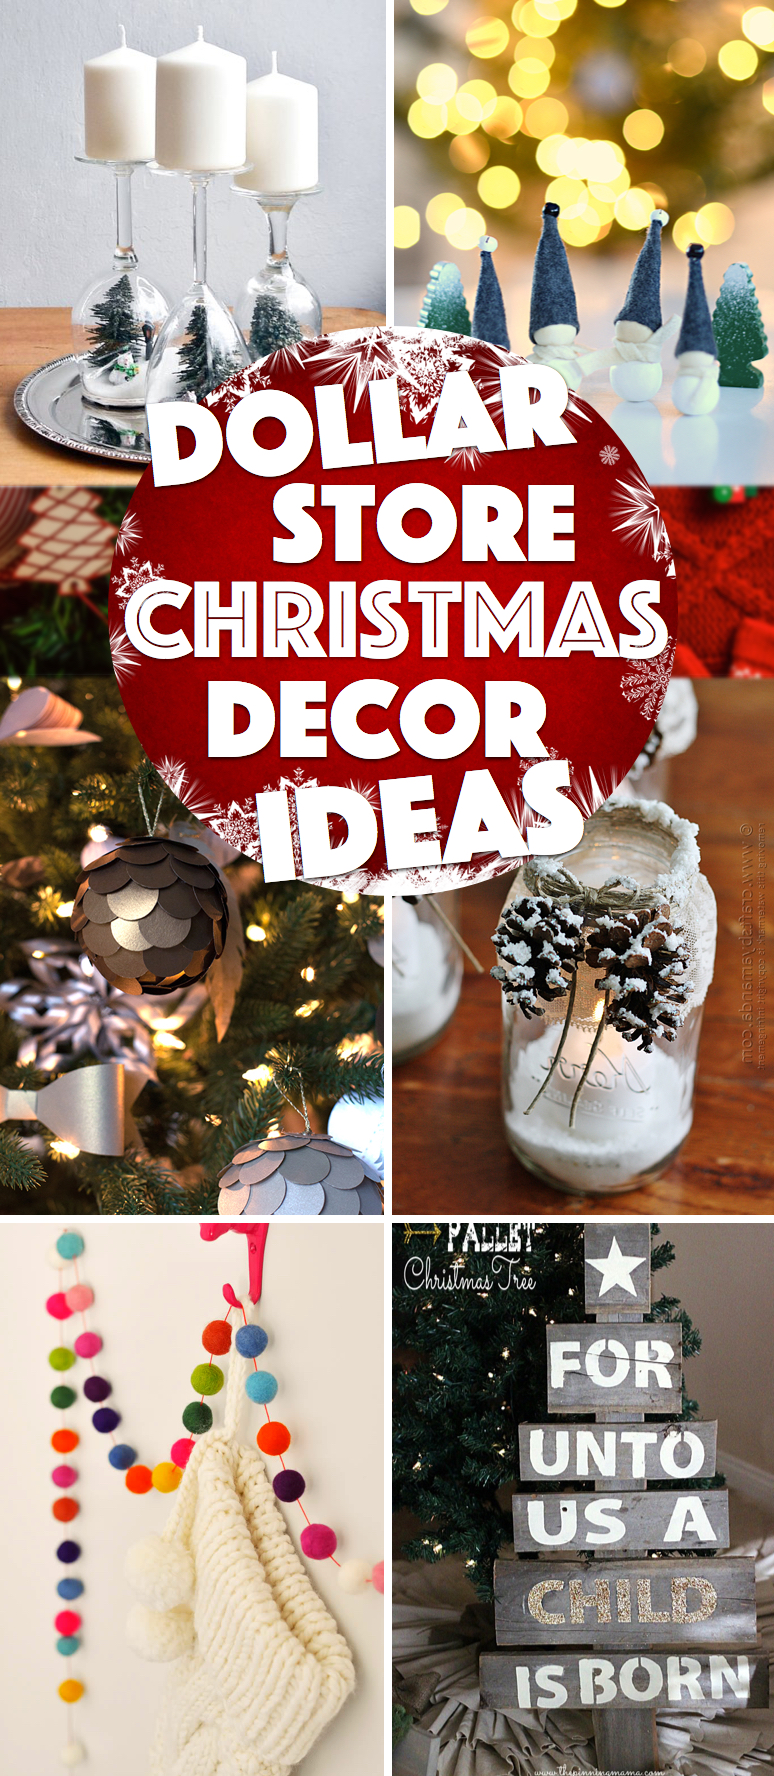 39 oh so gorgeous dollar store diy christmas decor ideas to make you scream with joy - 99 Cent Store Christmas Decorations